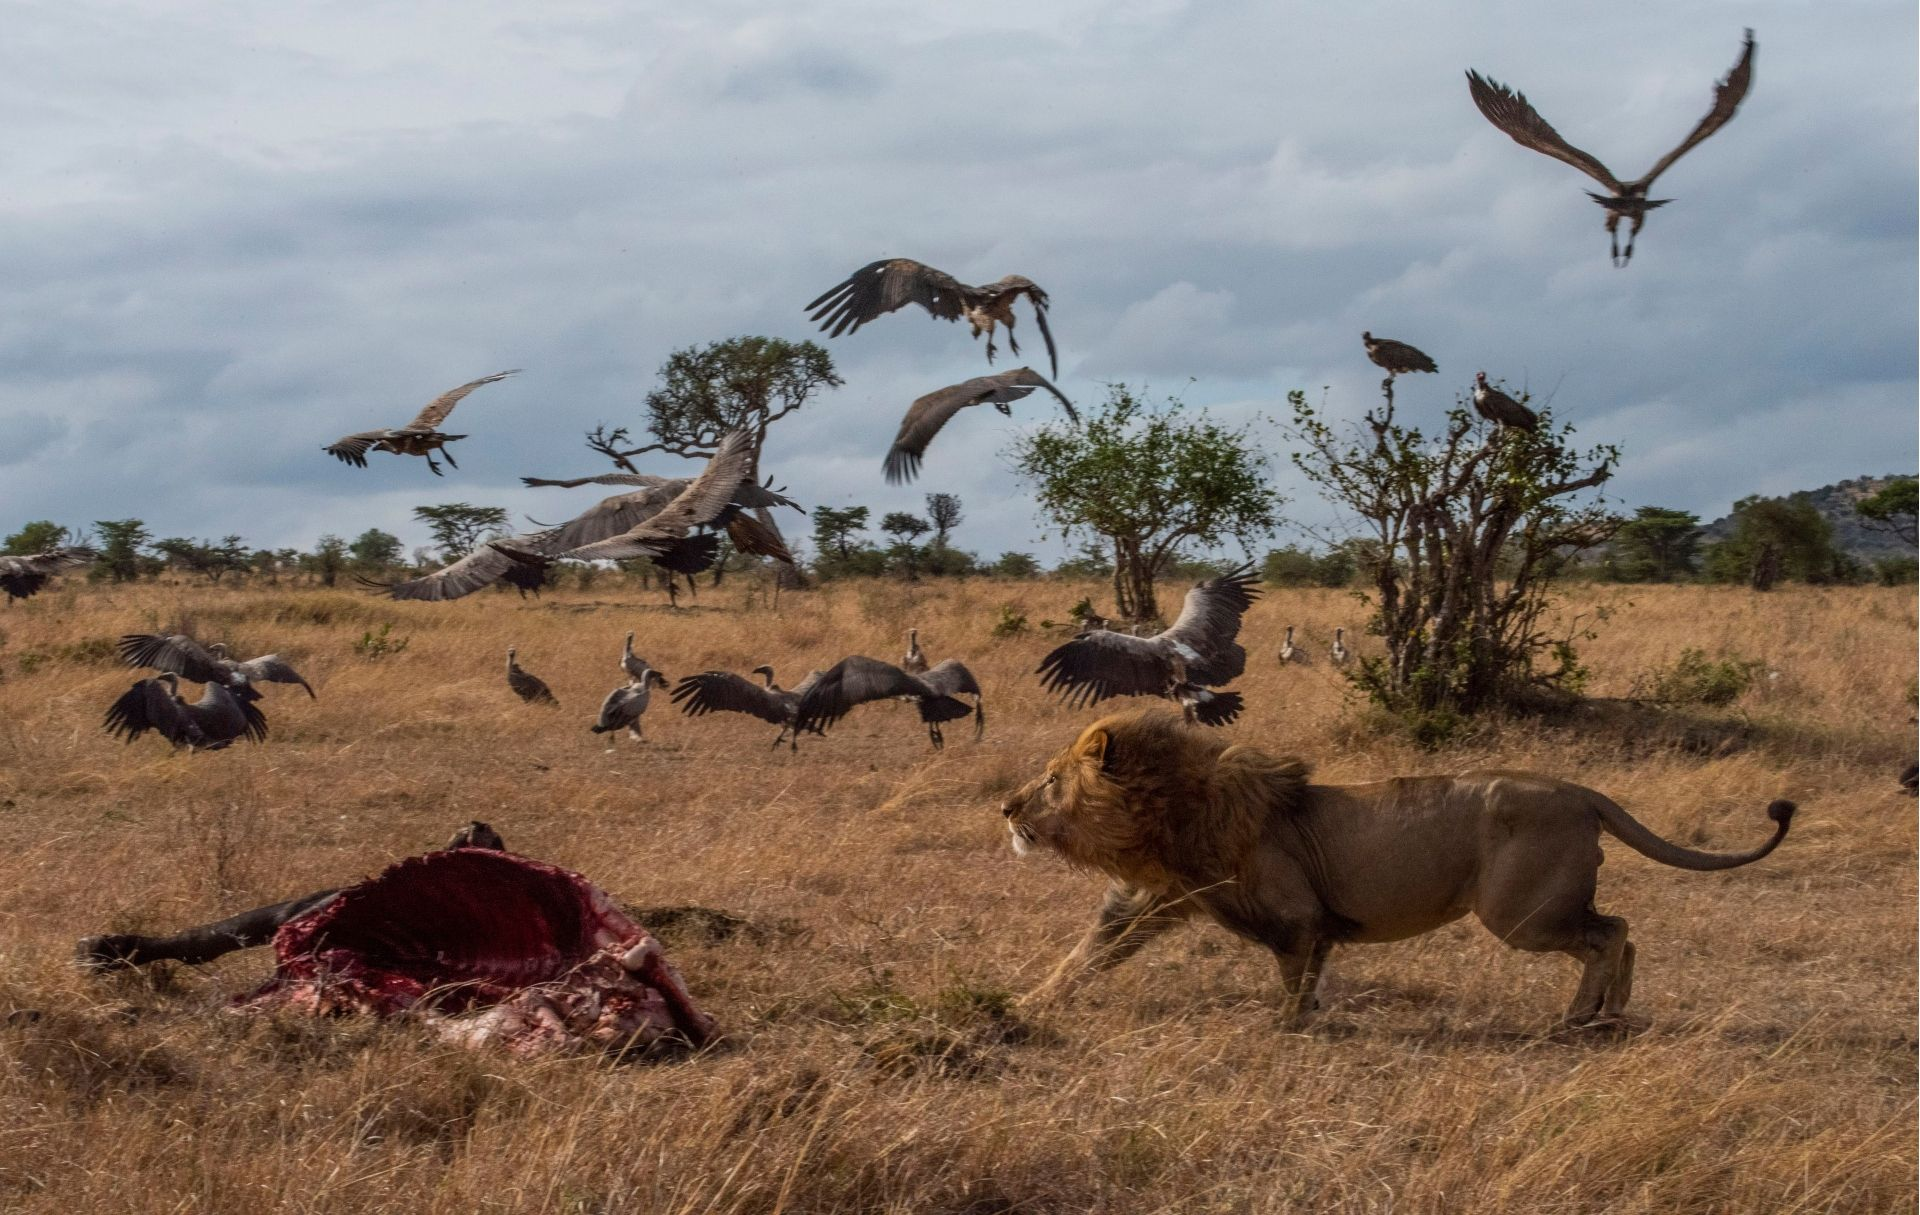 Chasing those pesky vultures